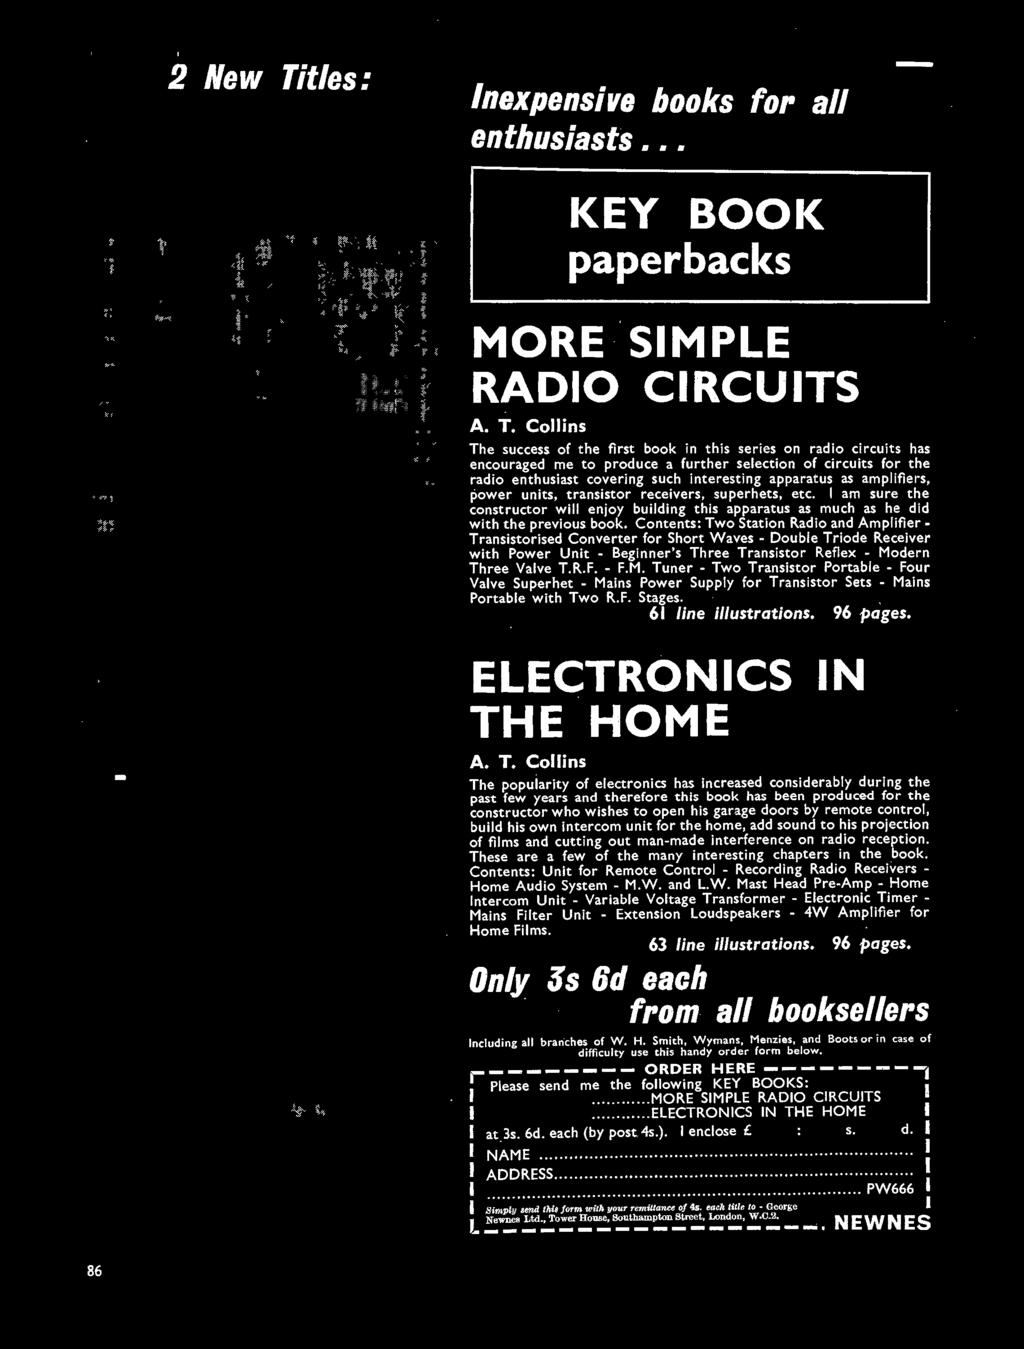 June 1966 Wireless Page Pocket Guide To Transistor Circuits Sub Circuit Diagrams For The Am Walkietalkie Experiments Collins Success Of First Book In This Series On Radio Has Encouraged Me